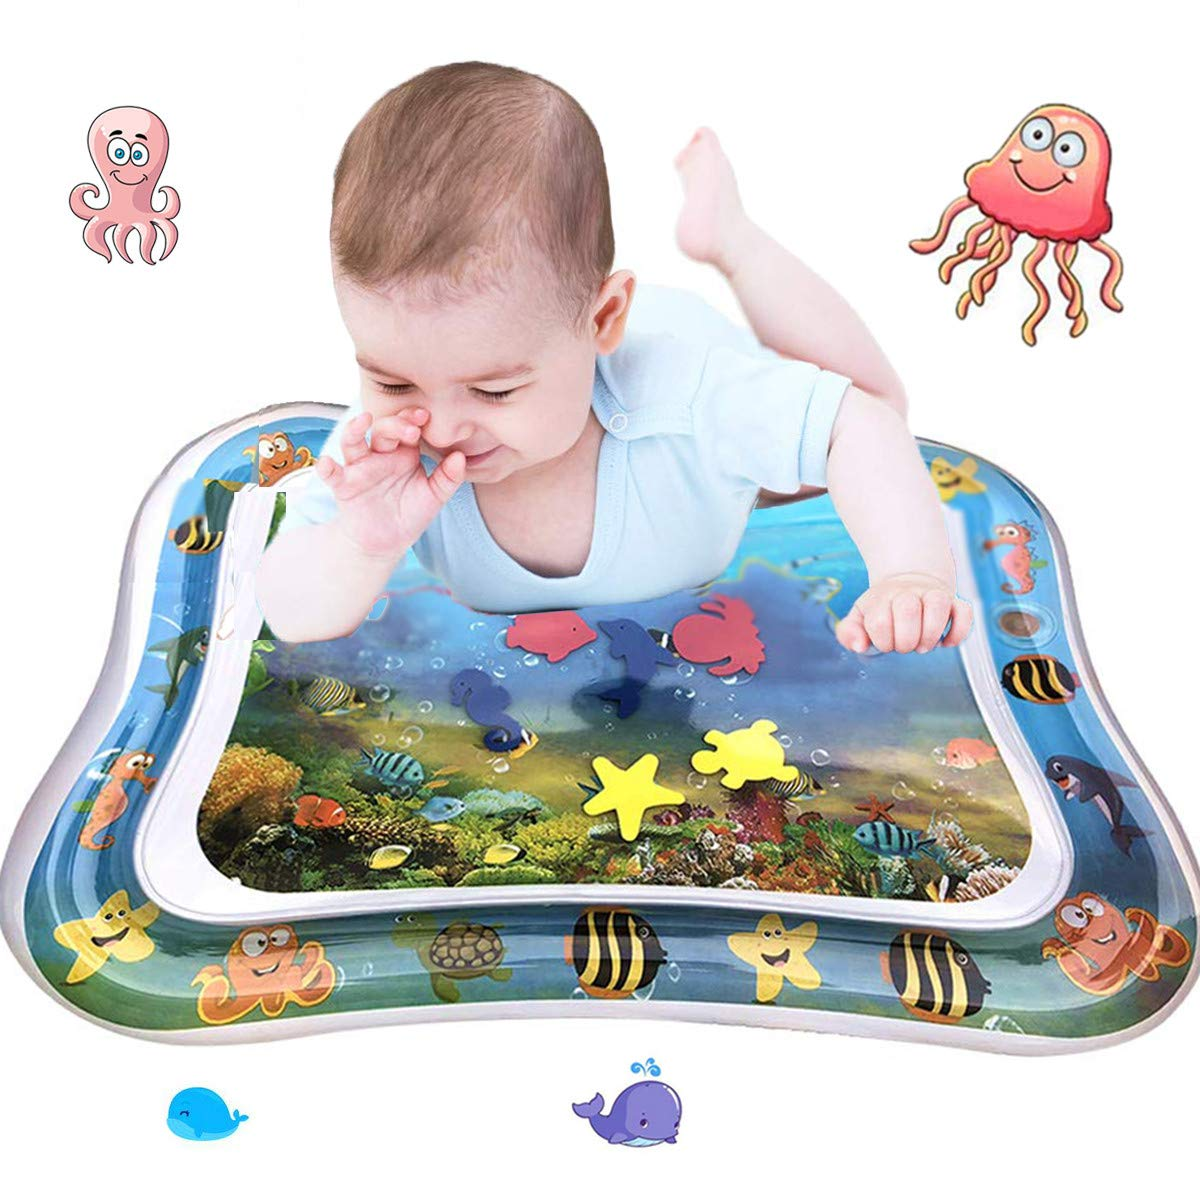 Linzze Tummy Time Inflatable Water Mat for Infants Babies Toddlers Water Play Mat Fun Toys For Cooling Summer Baby's Stimulation Growth (26' X20'')